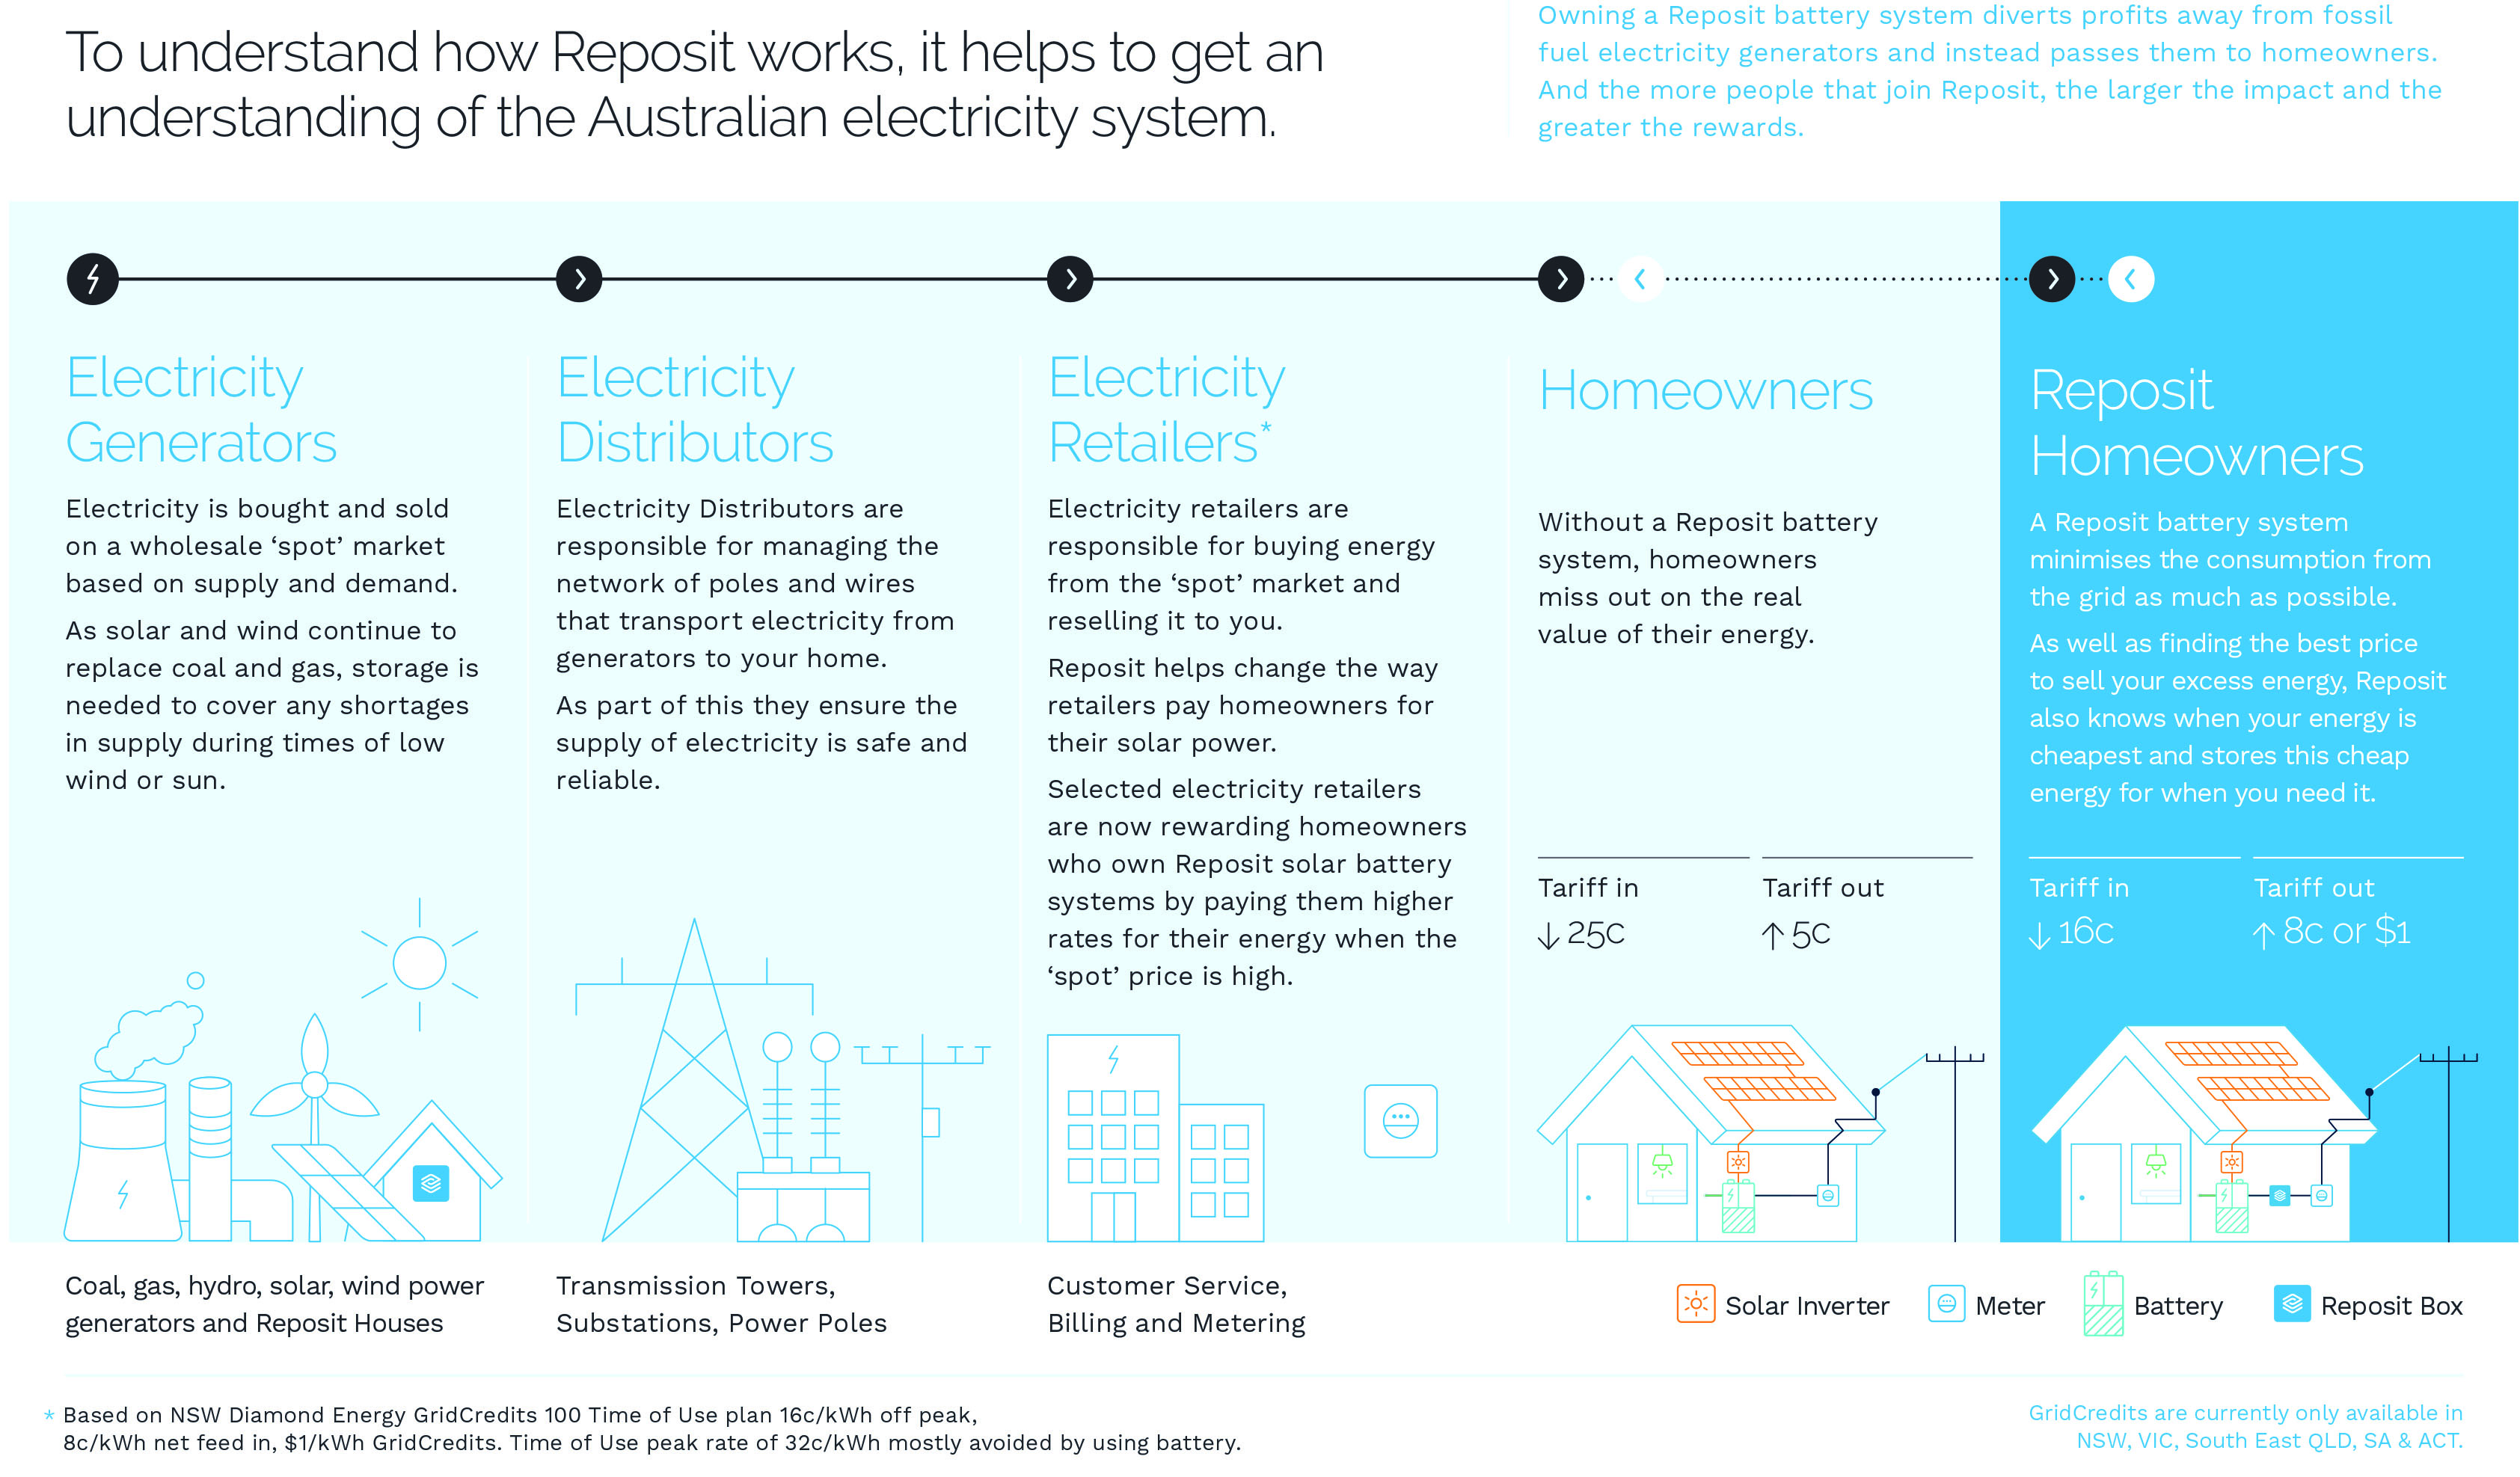 How Reposit Fits in the Grid